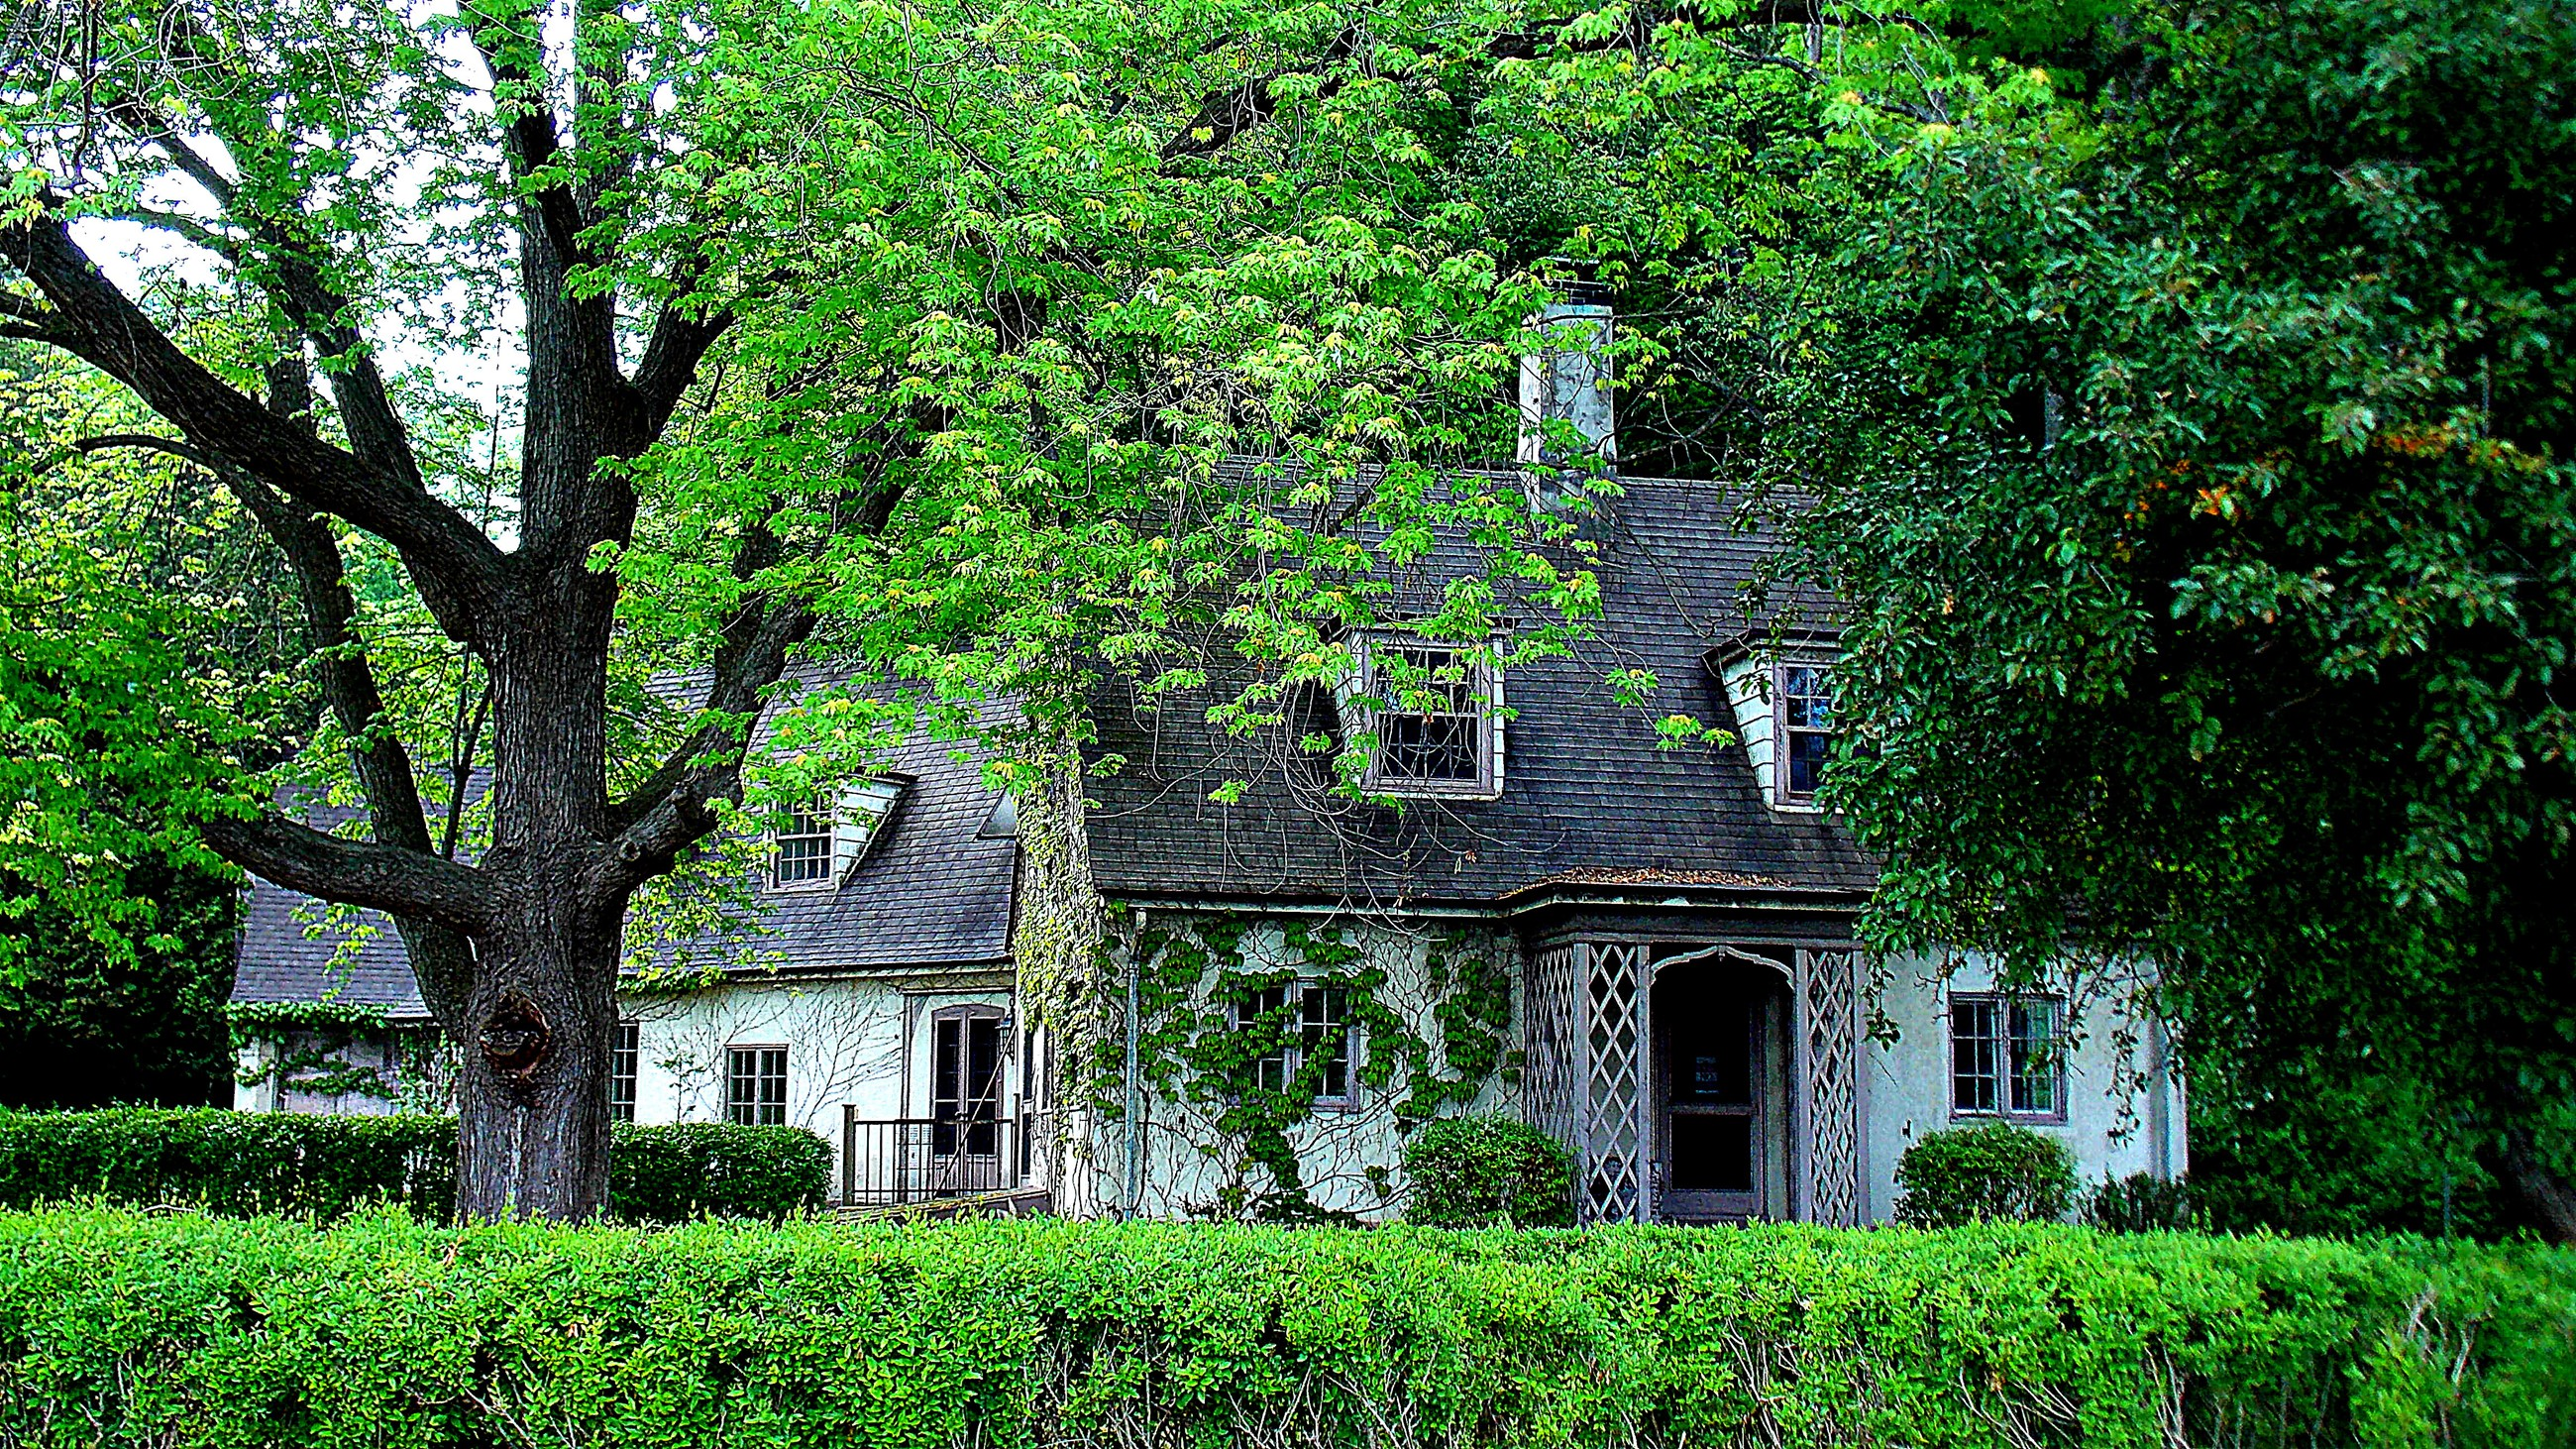 Vine Covered House - Seneca Pt. Rd